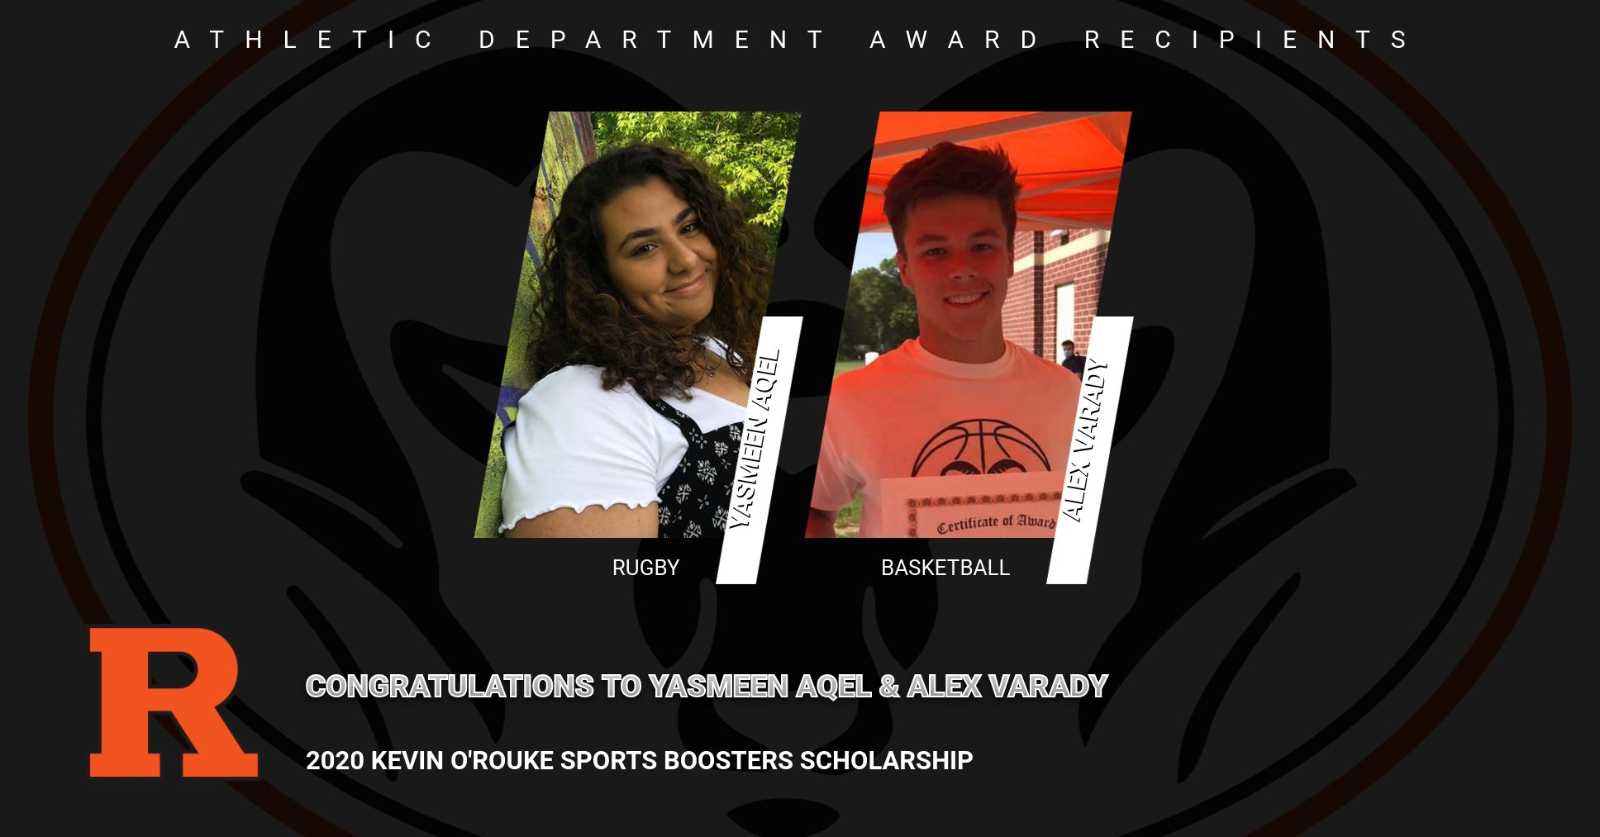 2020 Kevin O'Rouke Sports Boosters Scholarship